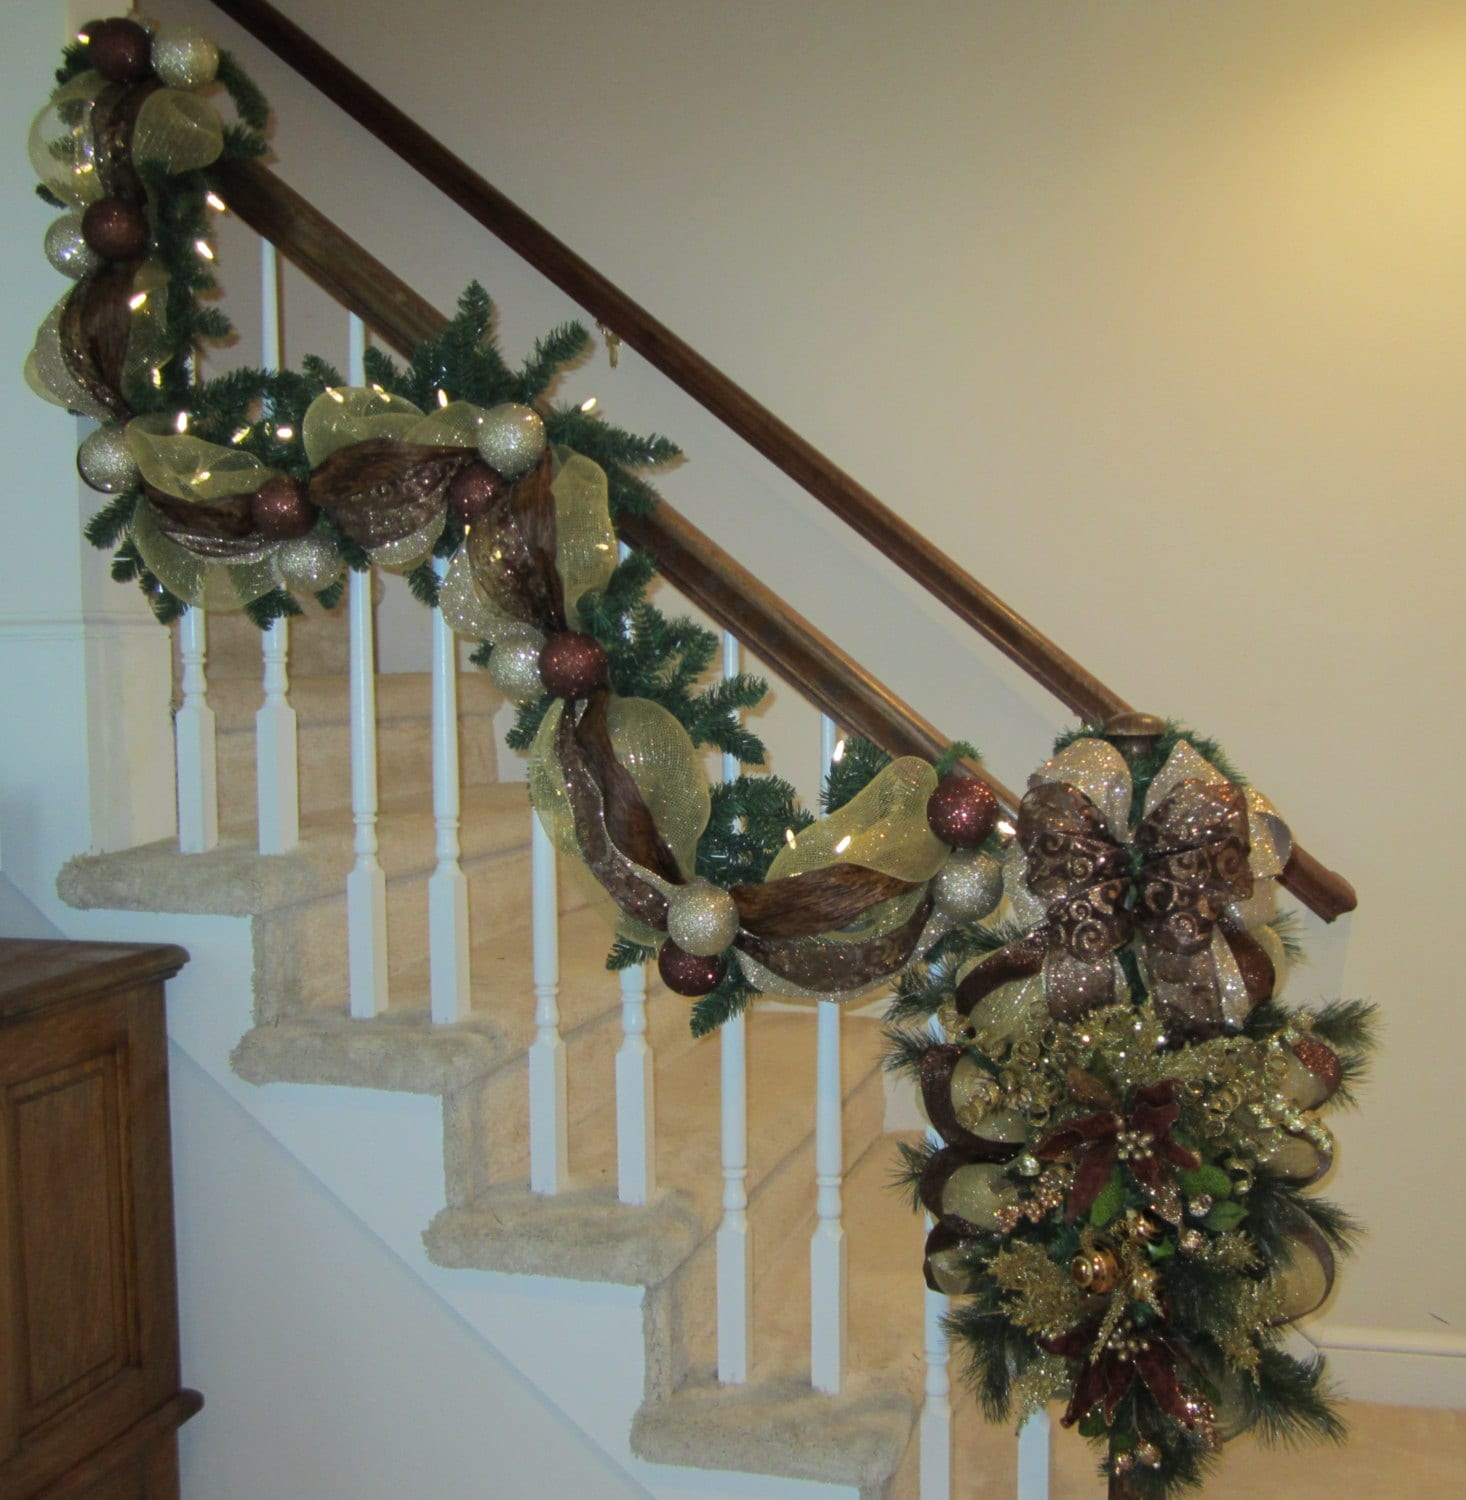 #867345 Christmas Stair Garland & Swag SHIPPING By  5463 decorations de noel miniatures 1466x1500 px @ aertt.com